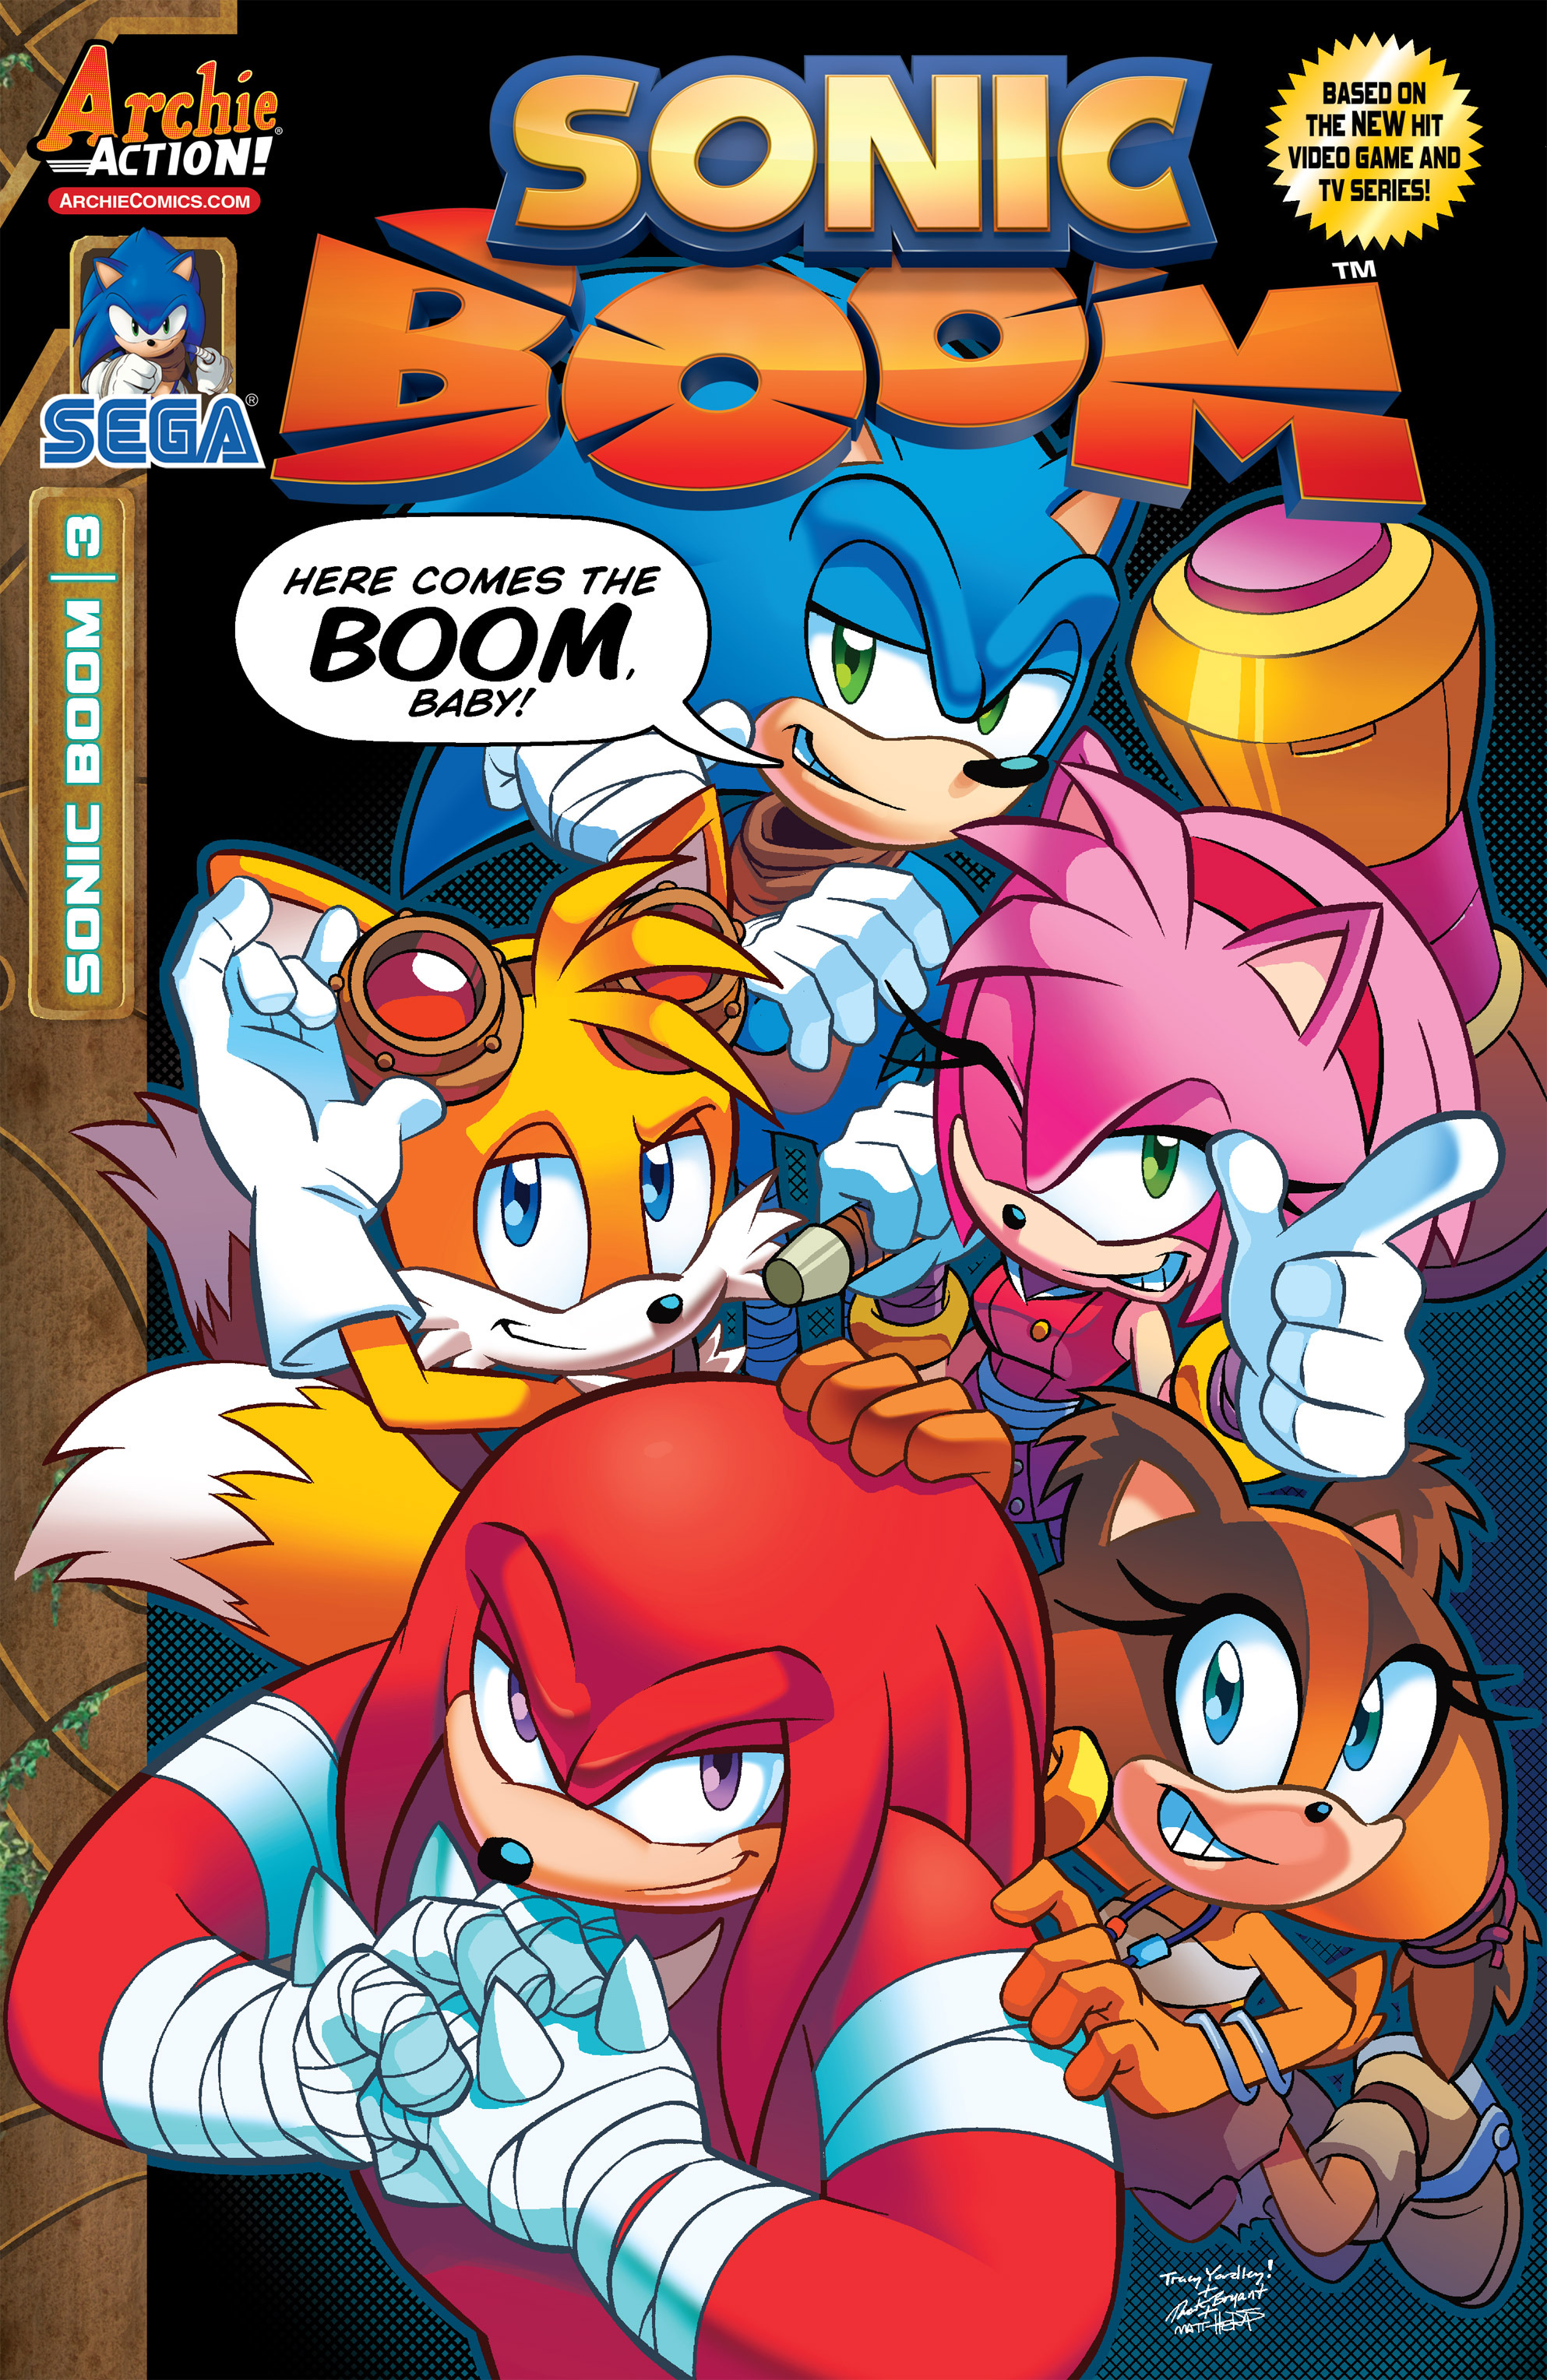 Archie Sonic Boom Issue 3 Sonic News Network Fandom